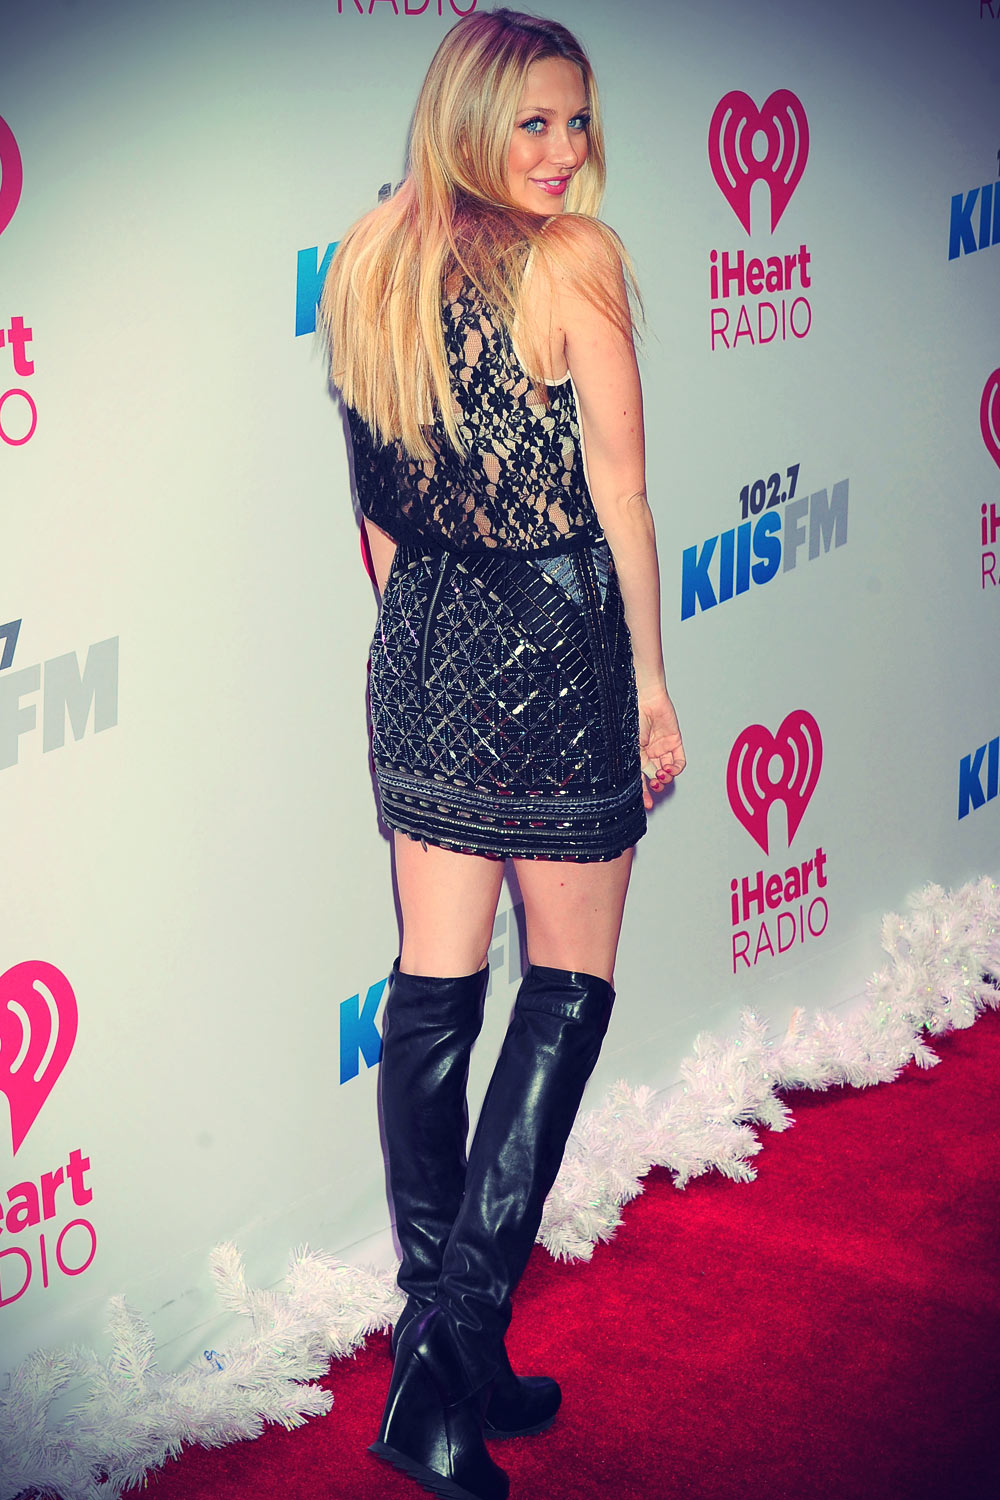 Stephanie Pratt KIIS FM's Jingle Ball 2013